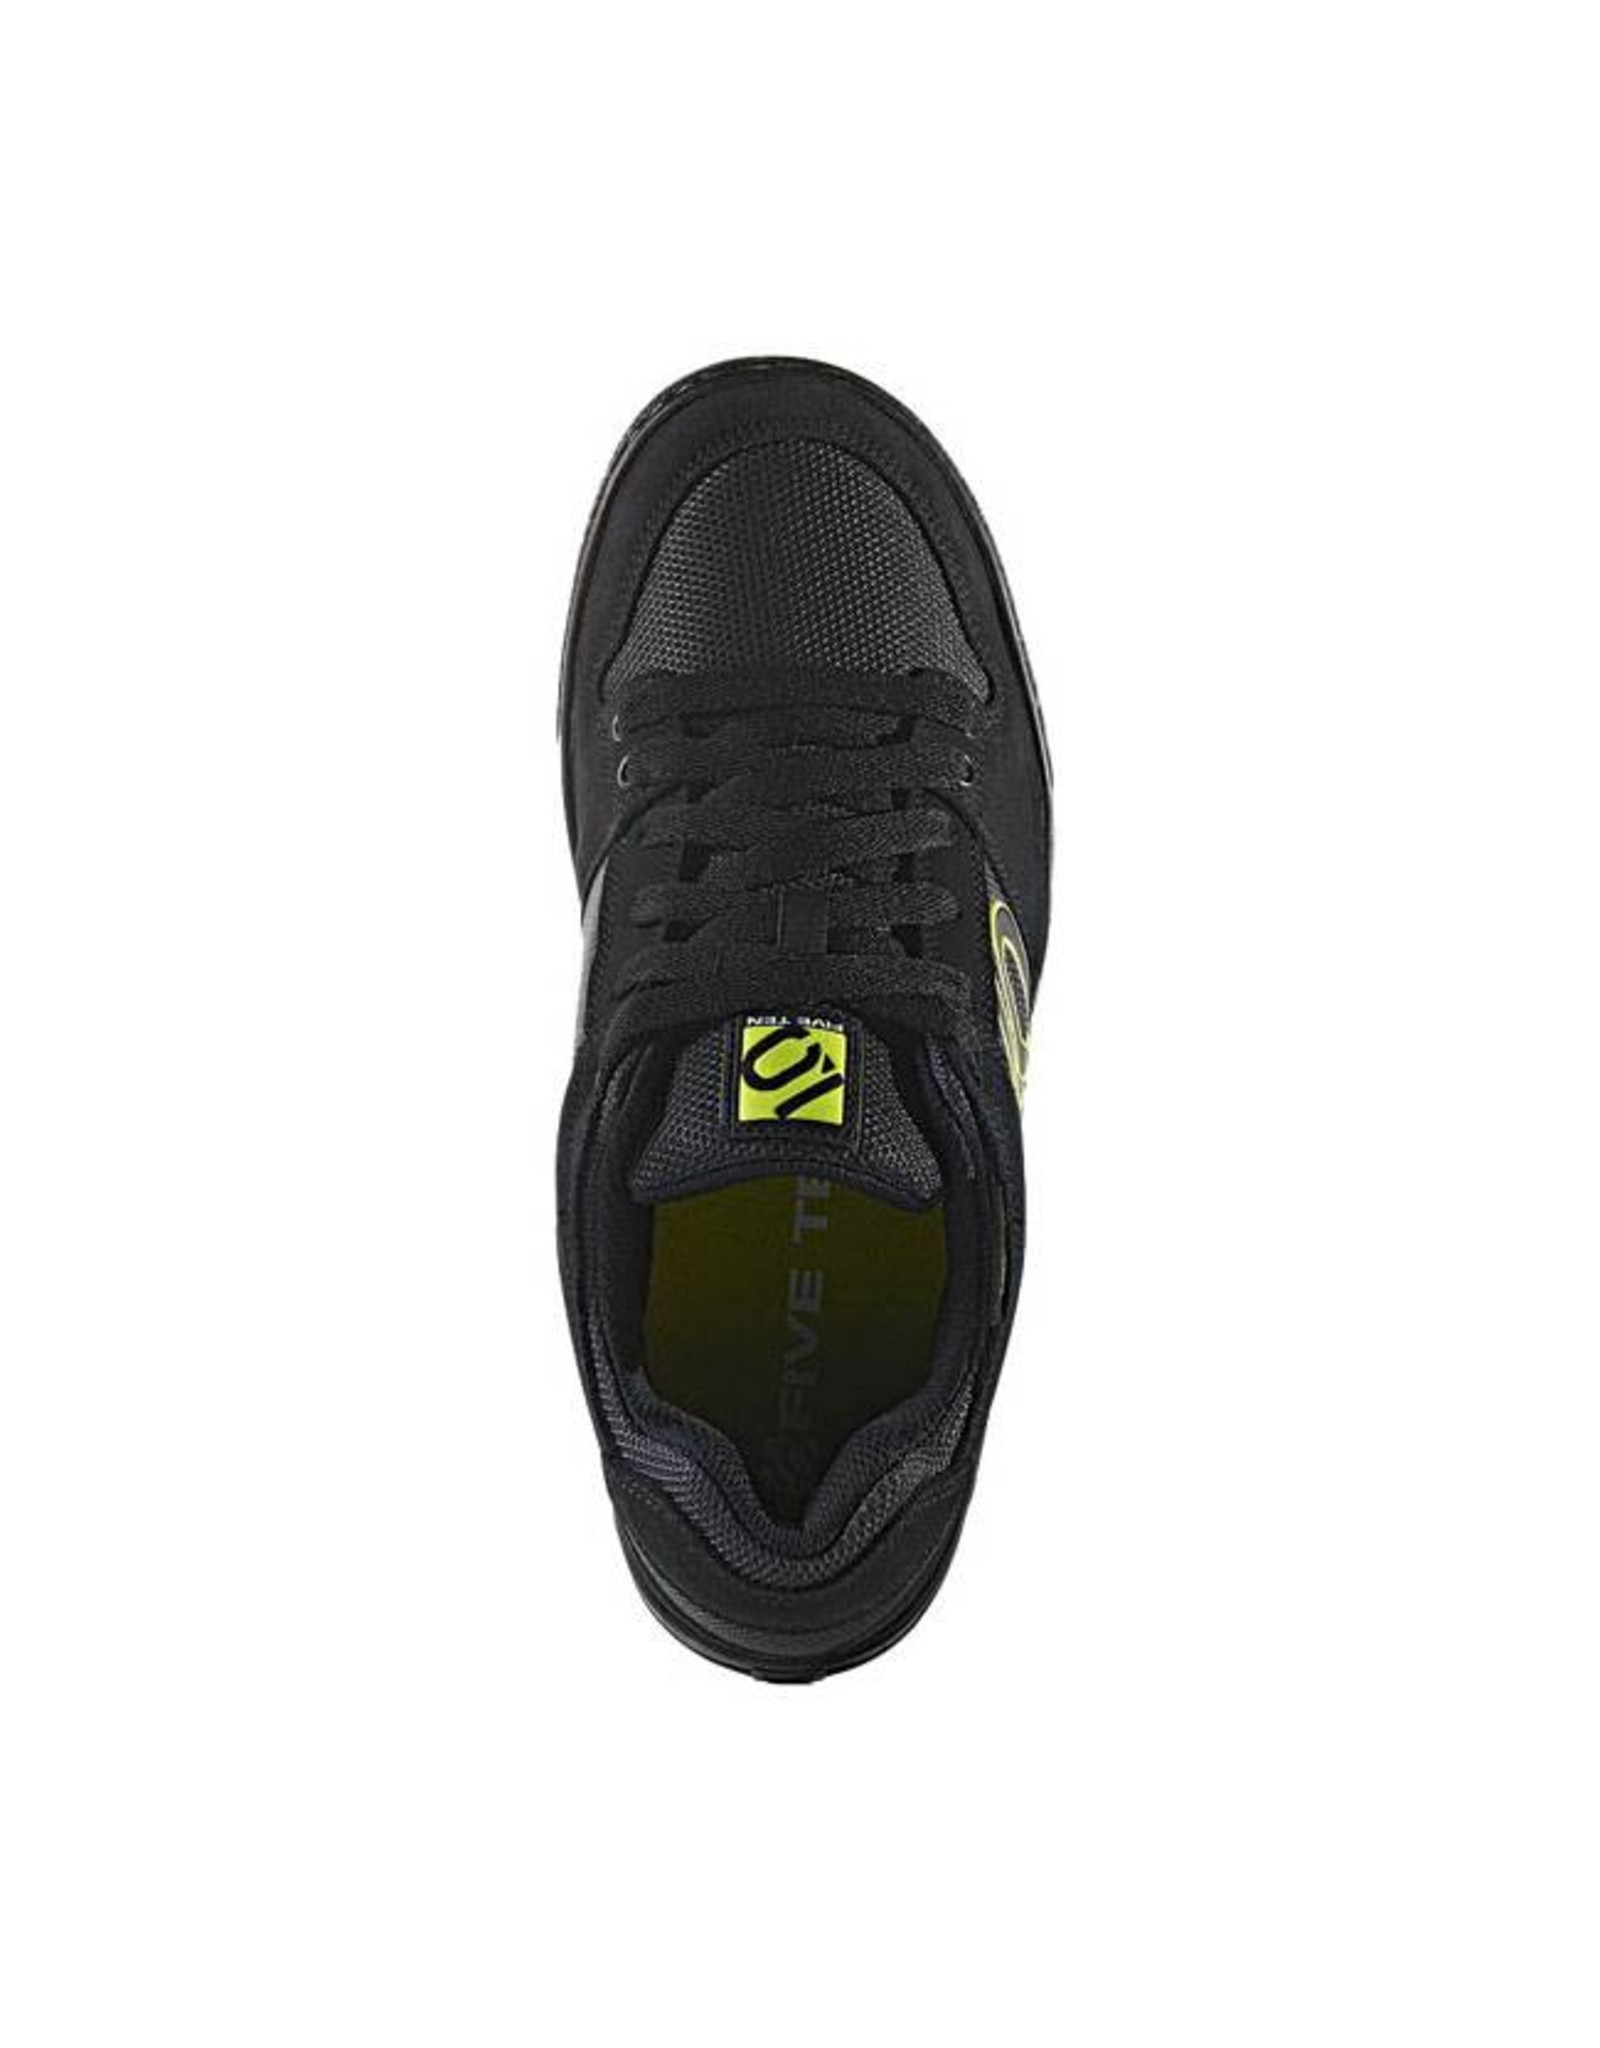 Five Ten Five Ten Freerider Men's Flat Pedal Shoe: Black Slime 10